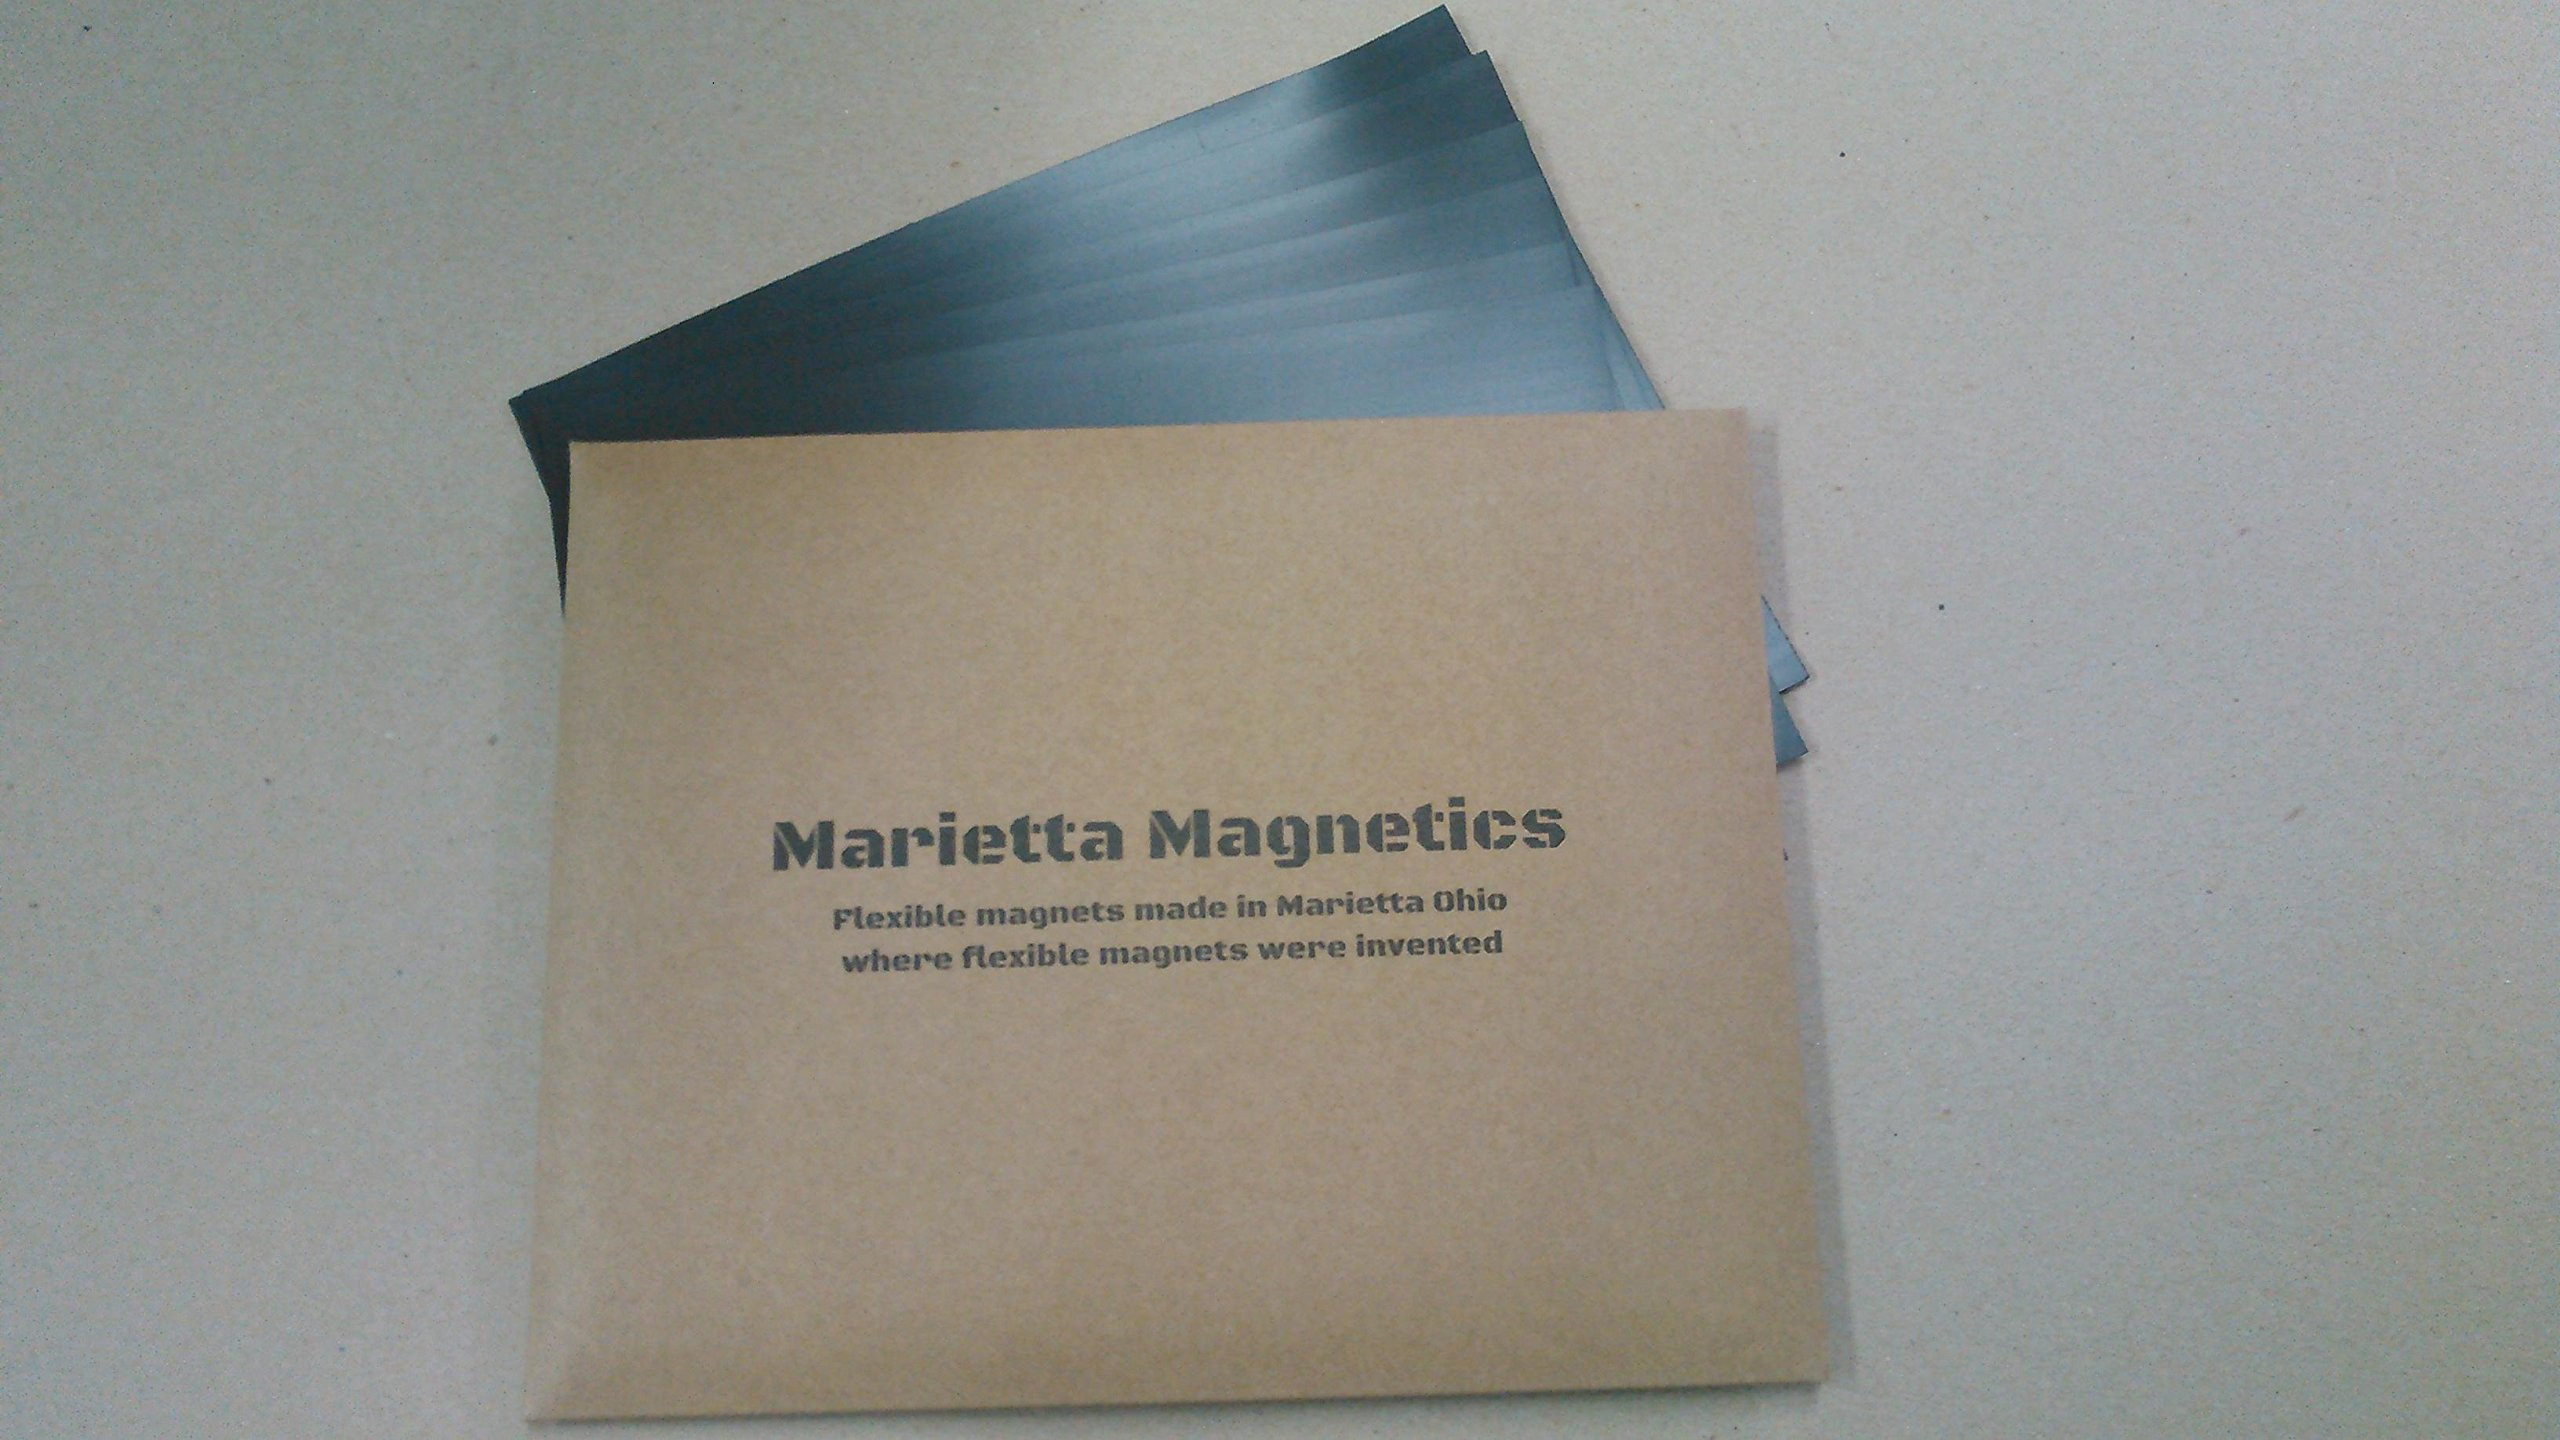 Marietta Magnetics - 10 Magnetic Sheets of 8.5'' x 11'' Adhesive (30 mil) Create your own Magnet! Flexible Peel & Stick Self Adhesive for Photos Crafts Stamp Dies Signs & More by Marietta Magnetics